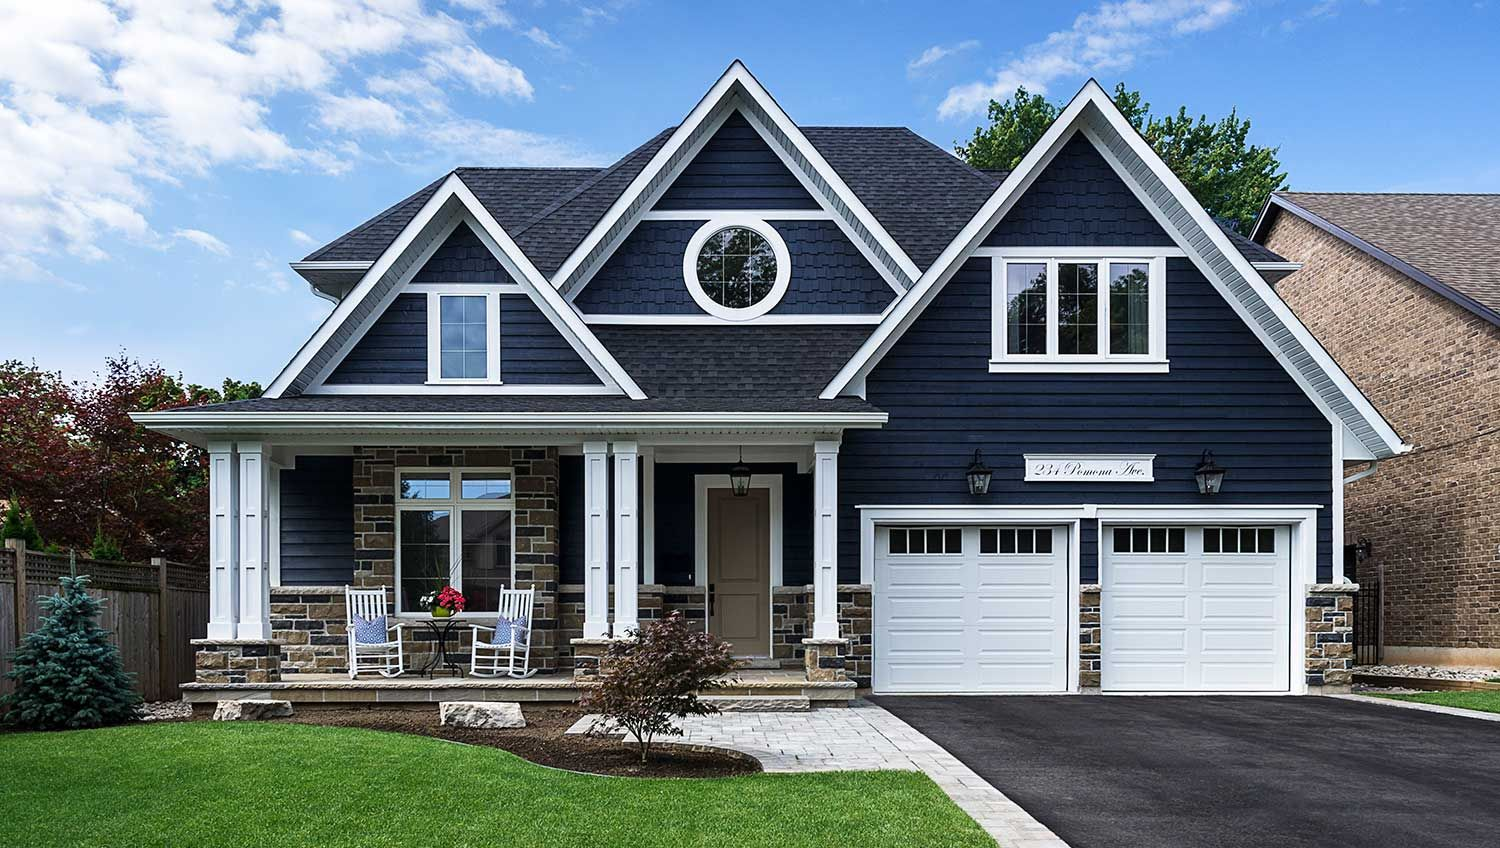 Navy house with white trim floor plans elevations in - White house white trim ...